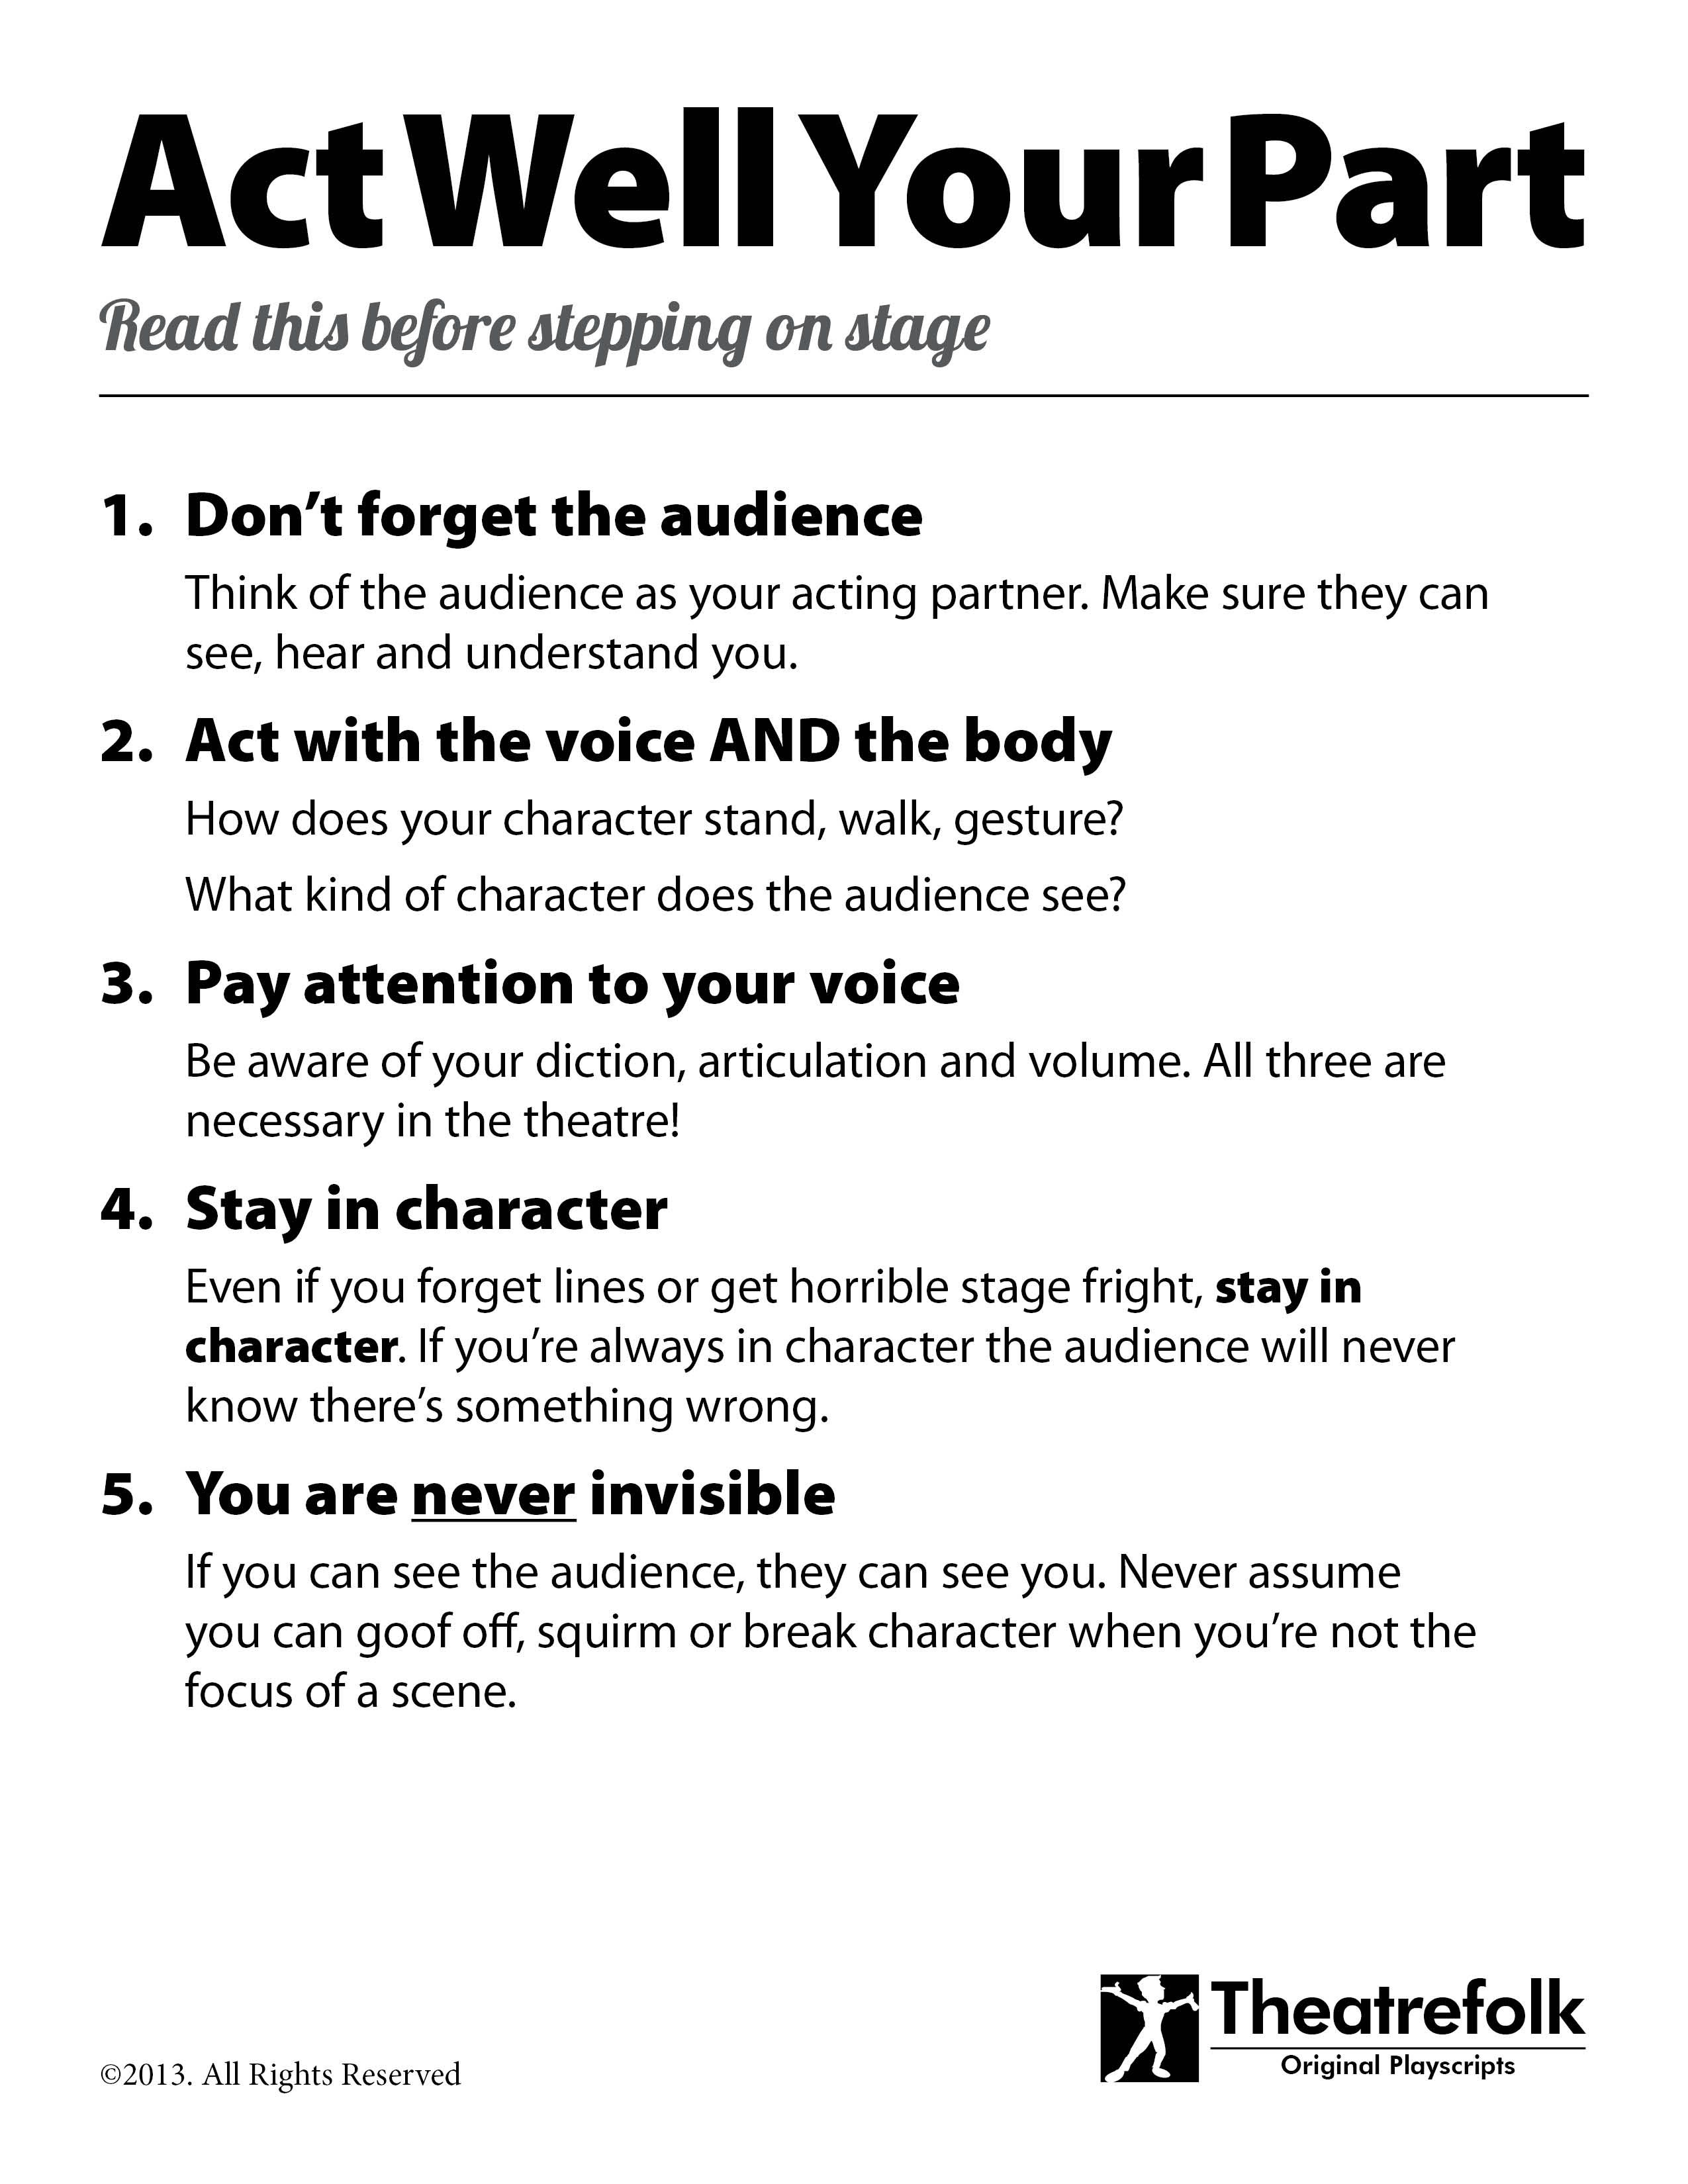 Acting Tips Poster Click To Download A Printable Version